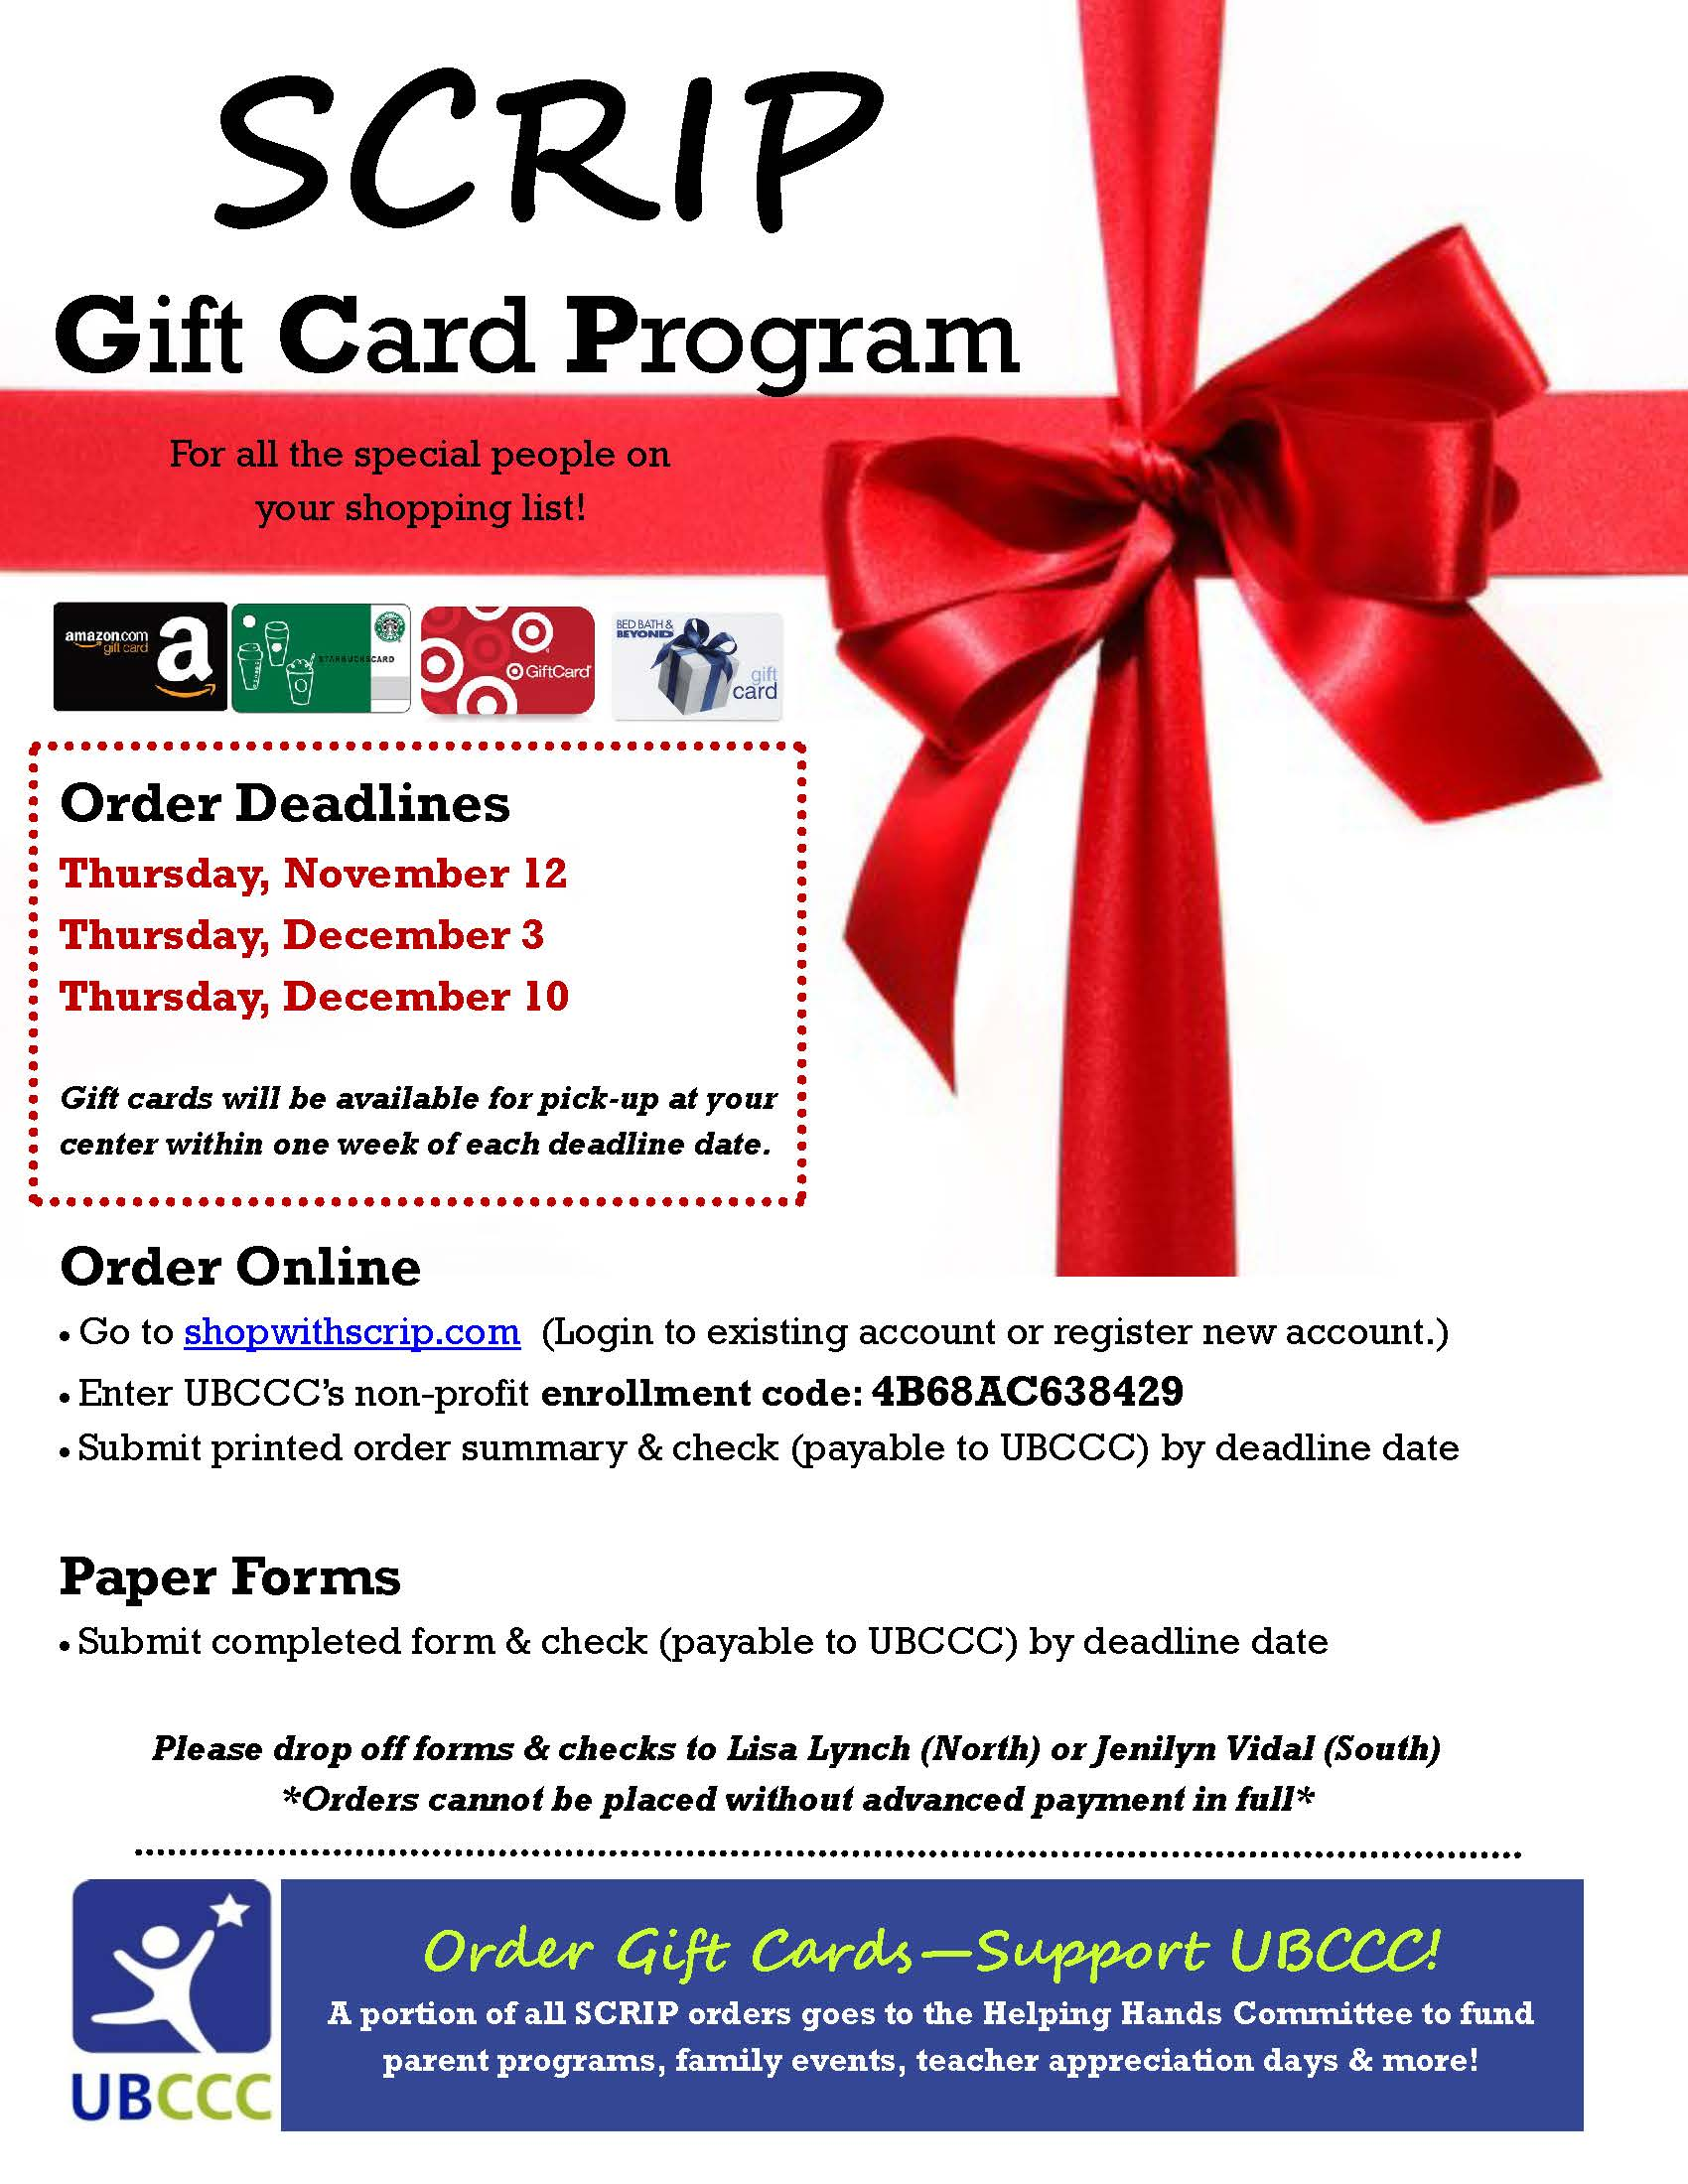 Annual SCRIP Gift Card Program University At Buffalo